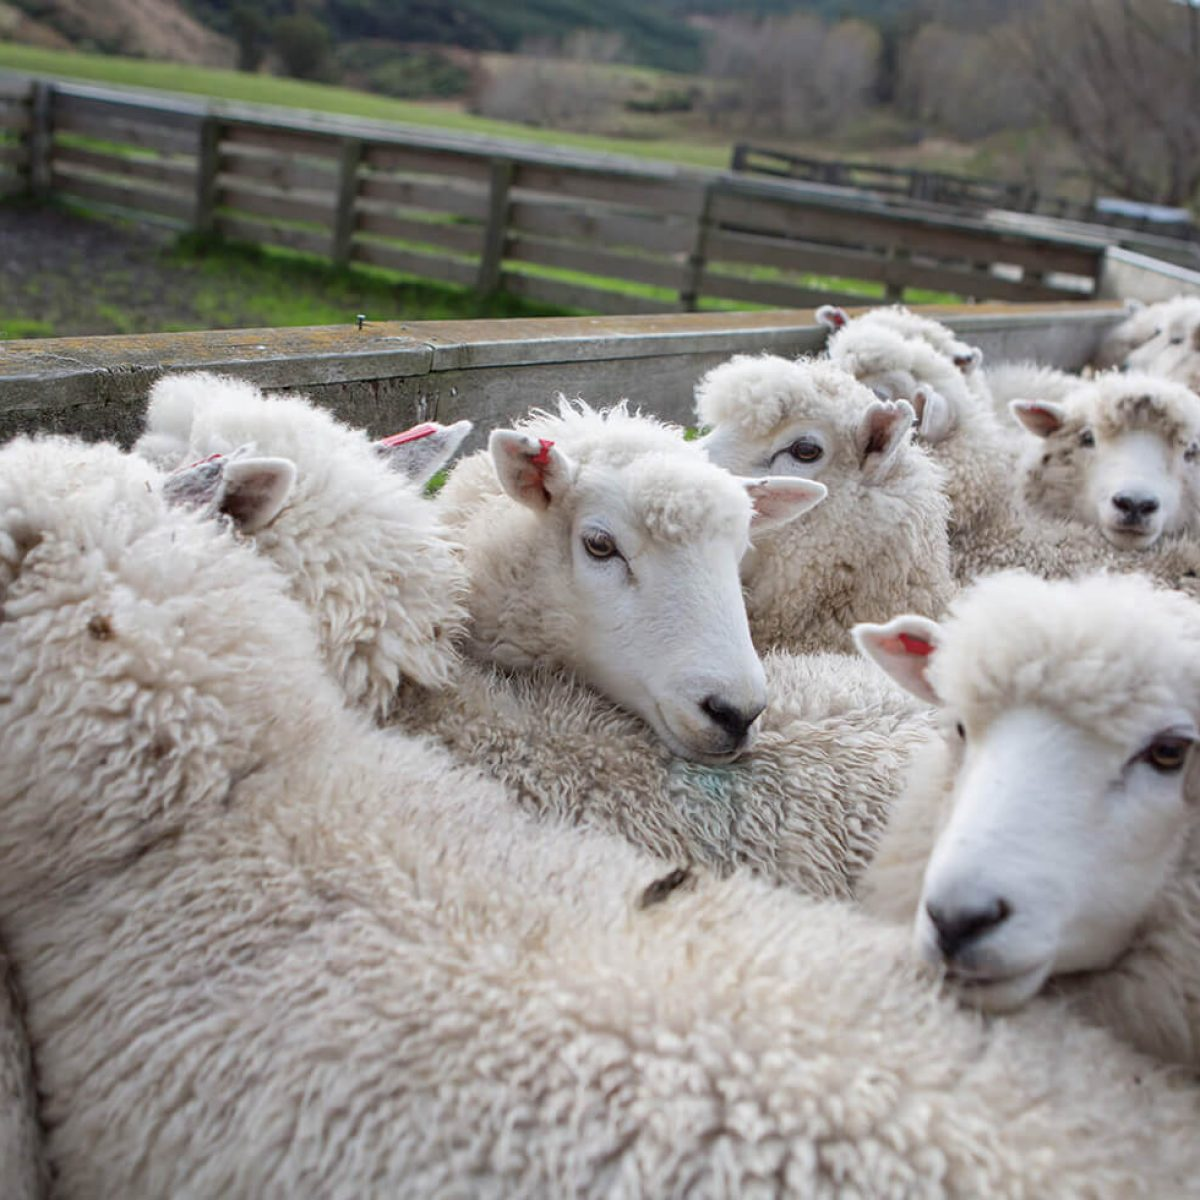 Penned sheep for inspection